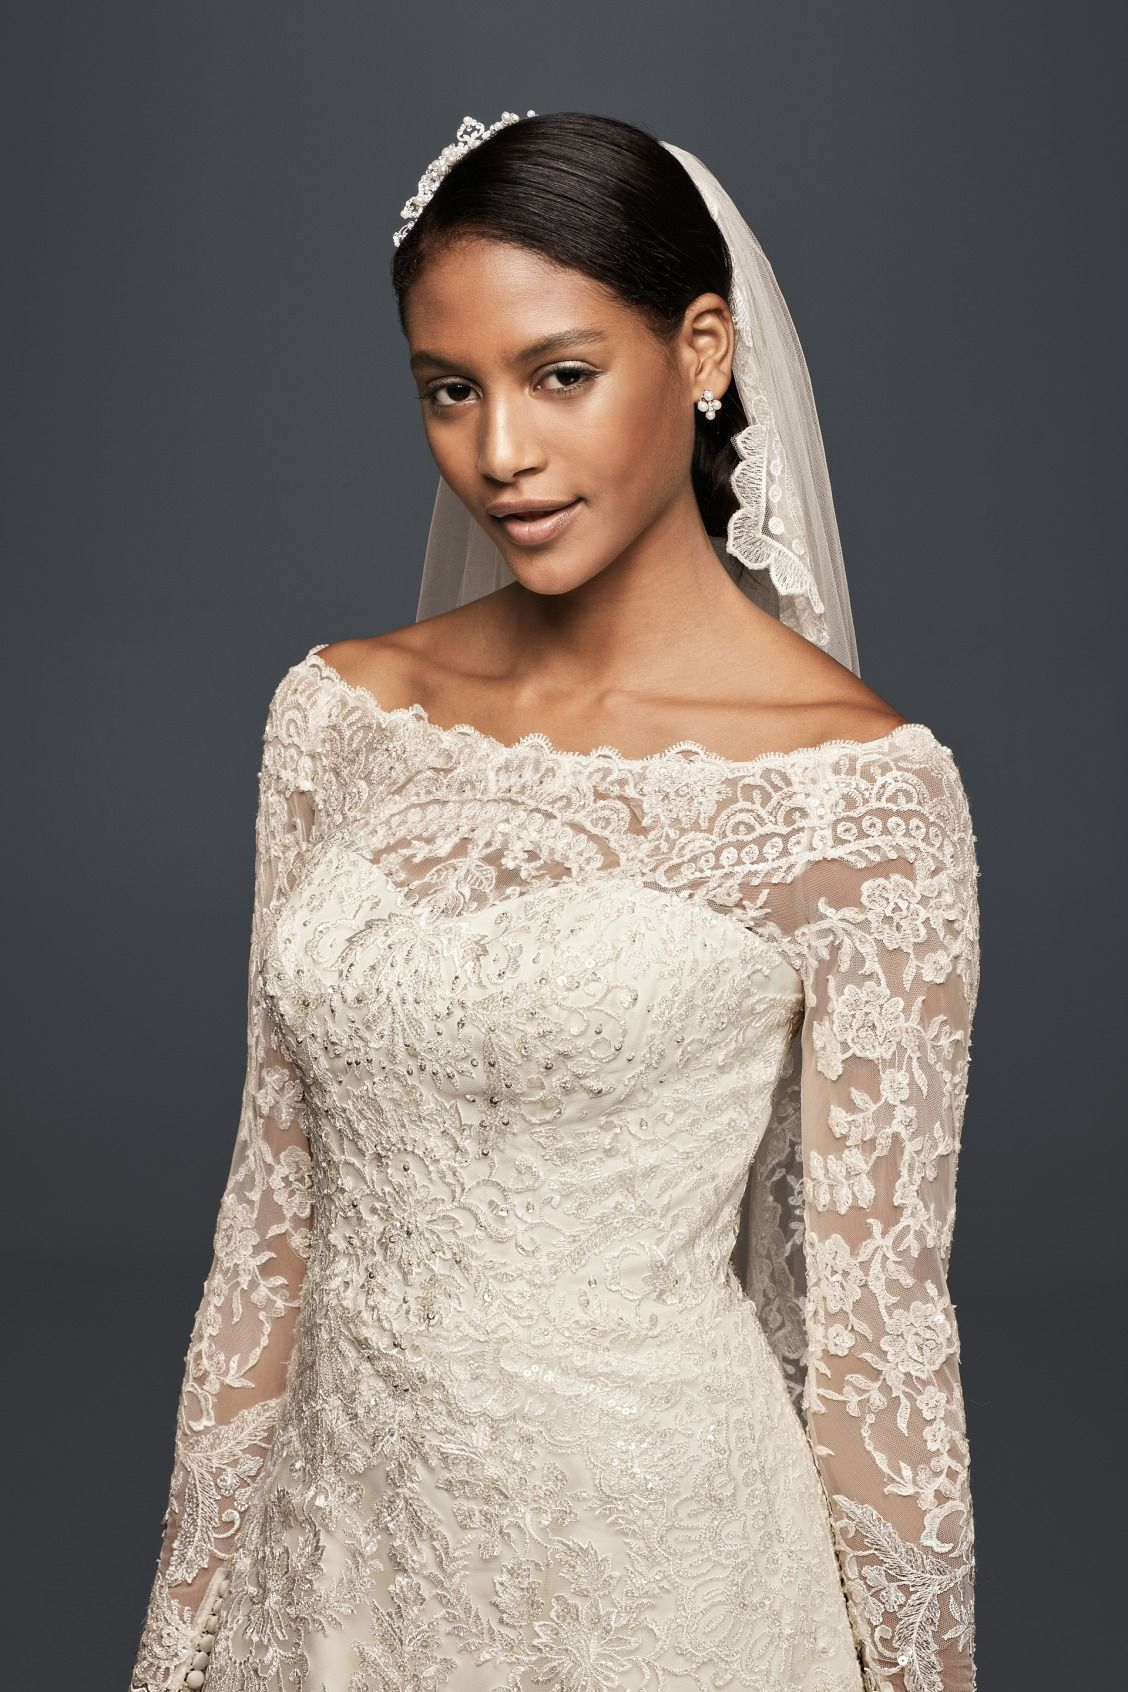 Opt for a sleek wedding day updo paired with a classic lace trim